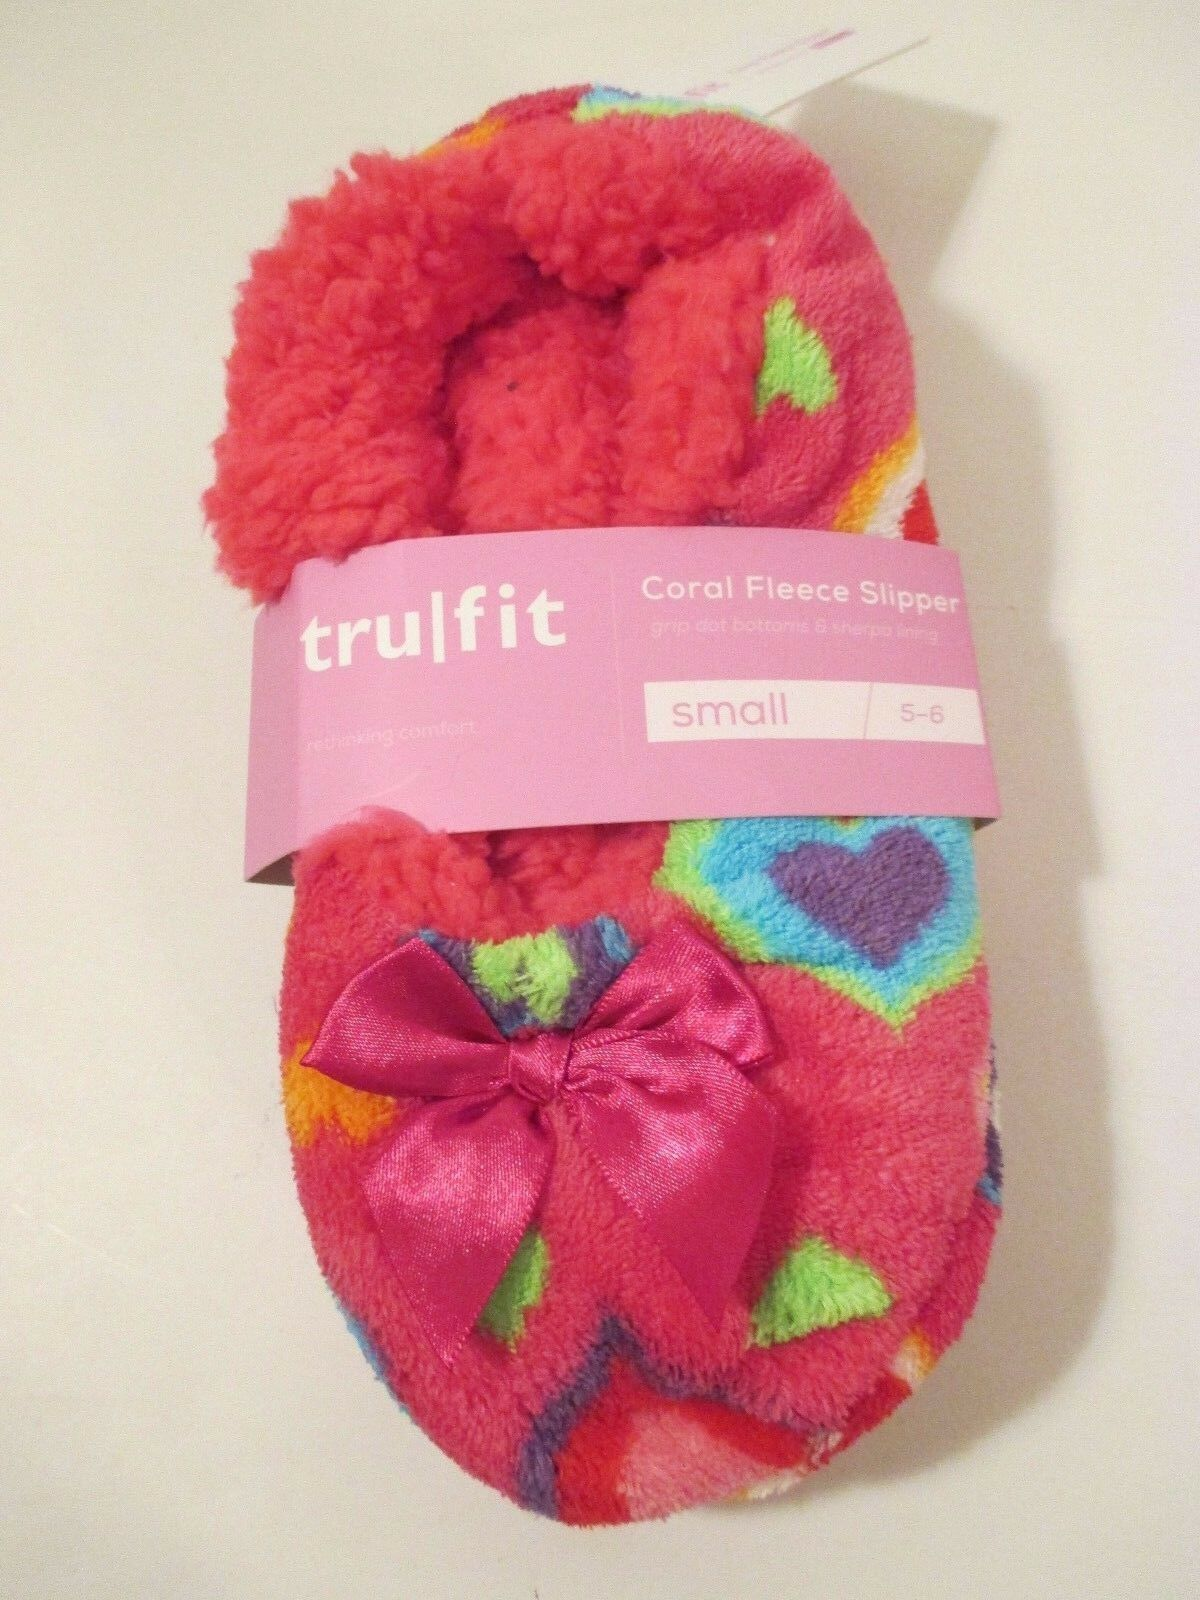 TRUFIT Pink Rainbow Heart Sherpa Non Skid Indoor Slippers Socks-Shoe Size S 5-6